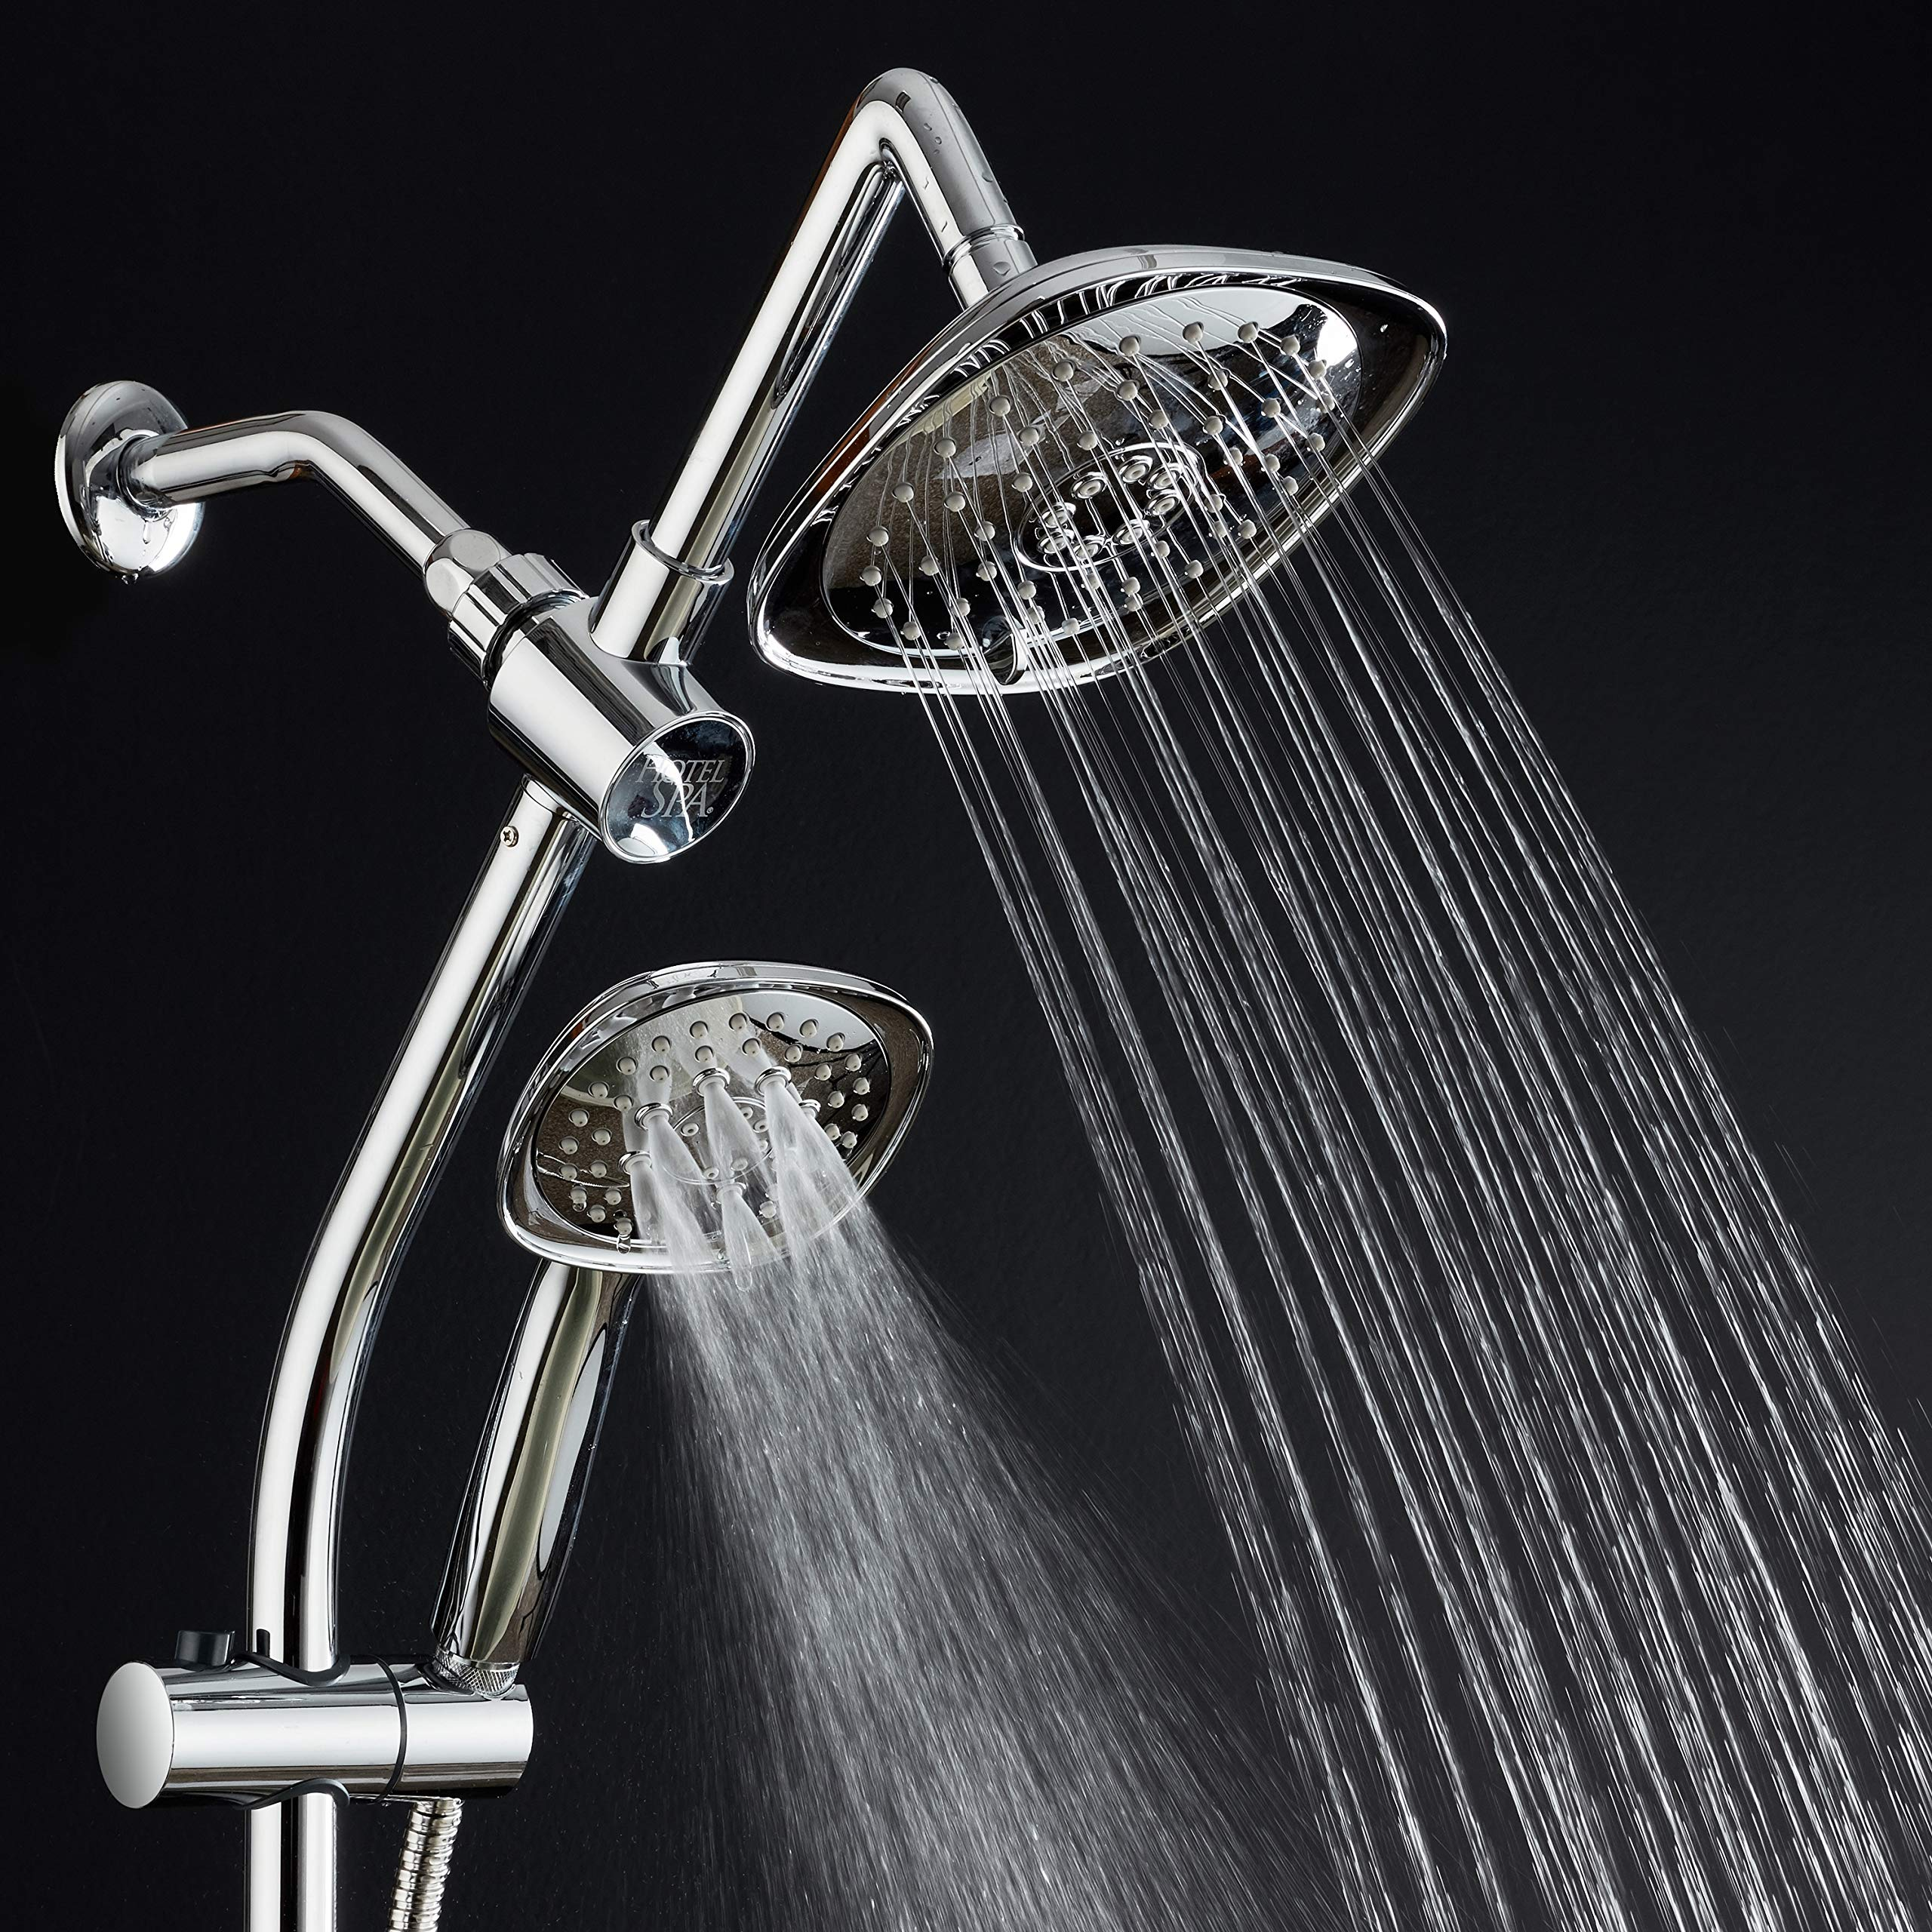 Spa Station 34'' Adjustable Drill-Free Slide Bar with 48-setting Showerhead Combo & Height Extension Arm / 3-way Square Rain & Handheld Shower Head/Low Reach Diverter/Stainless Steel Hose/Chrome by Hotel Spa (Image #2)